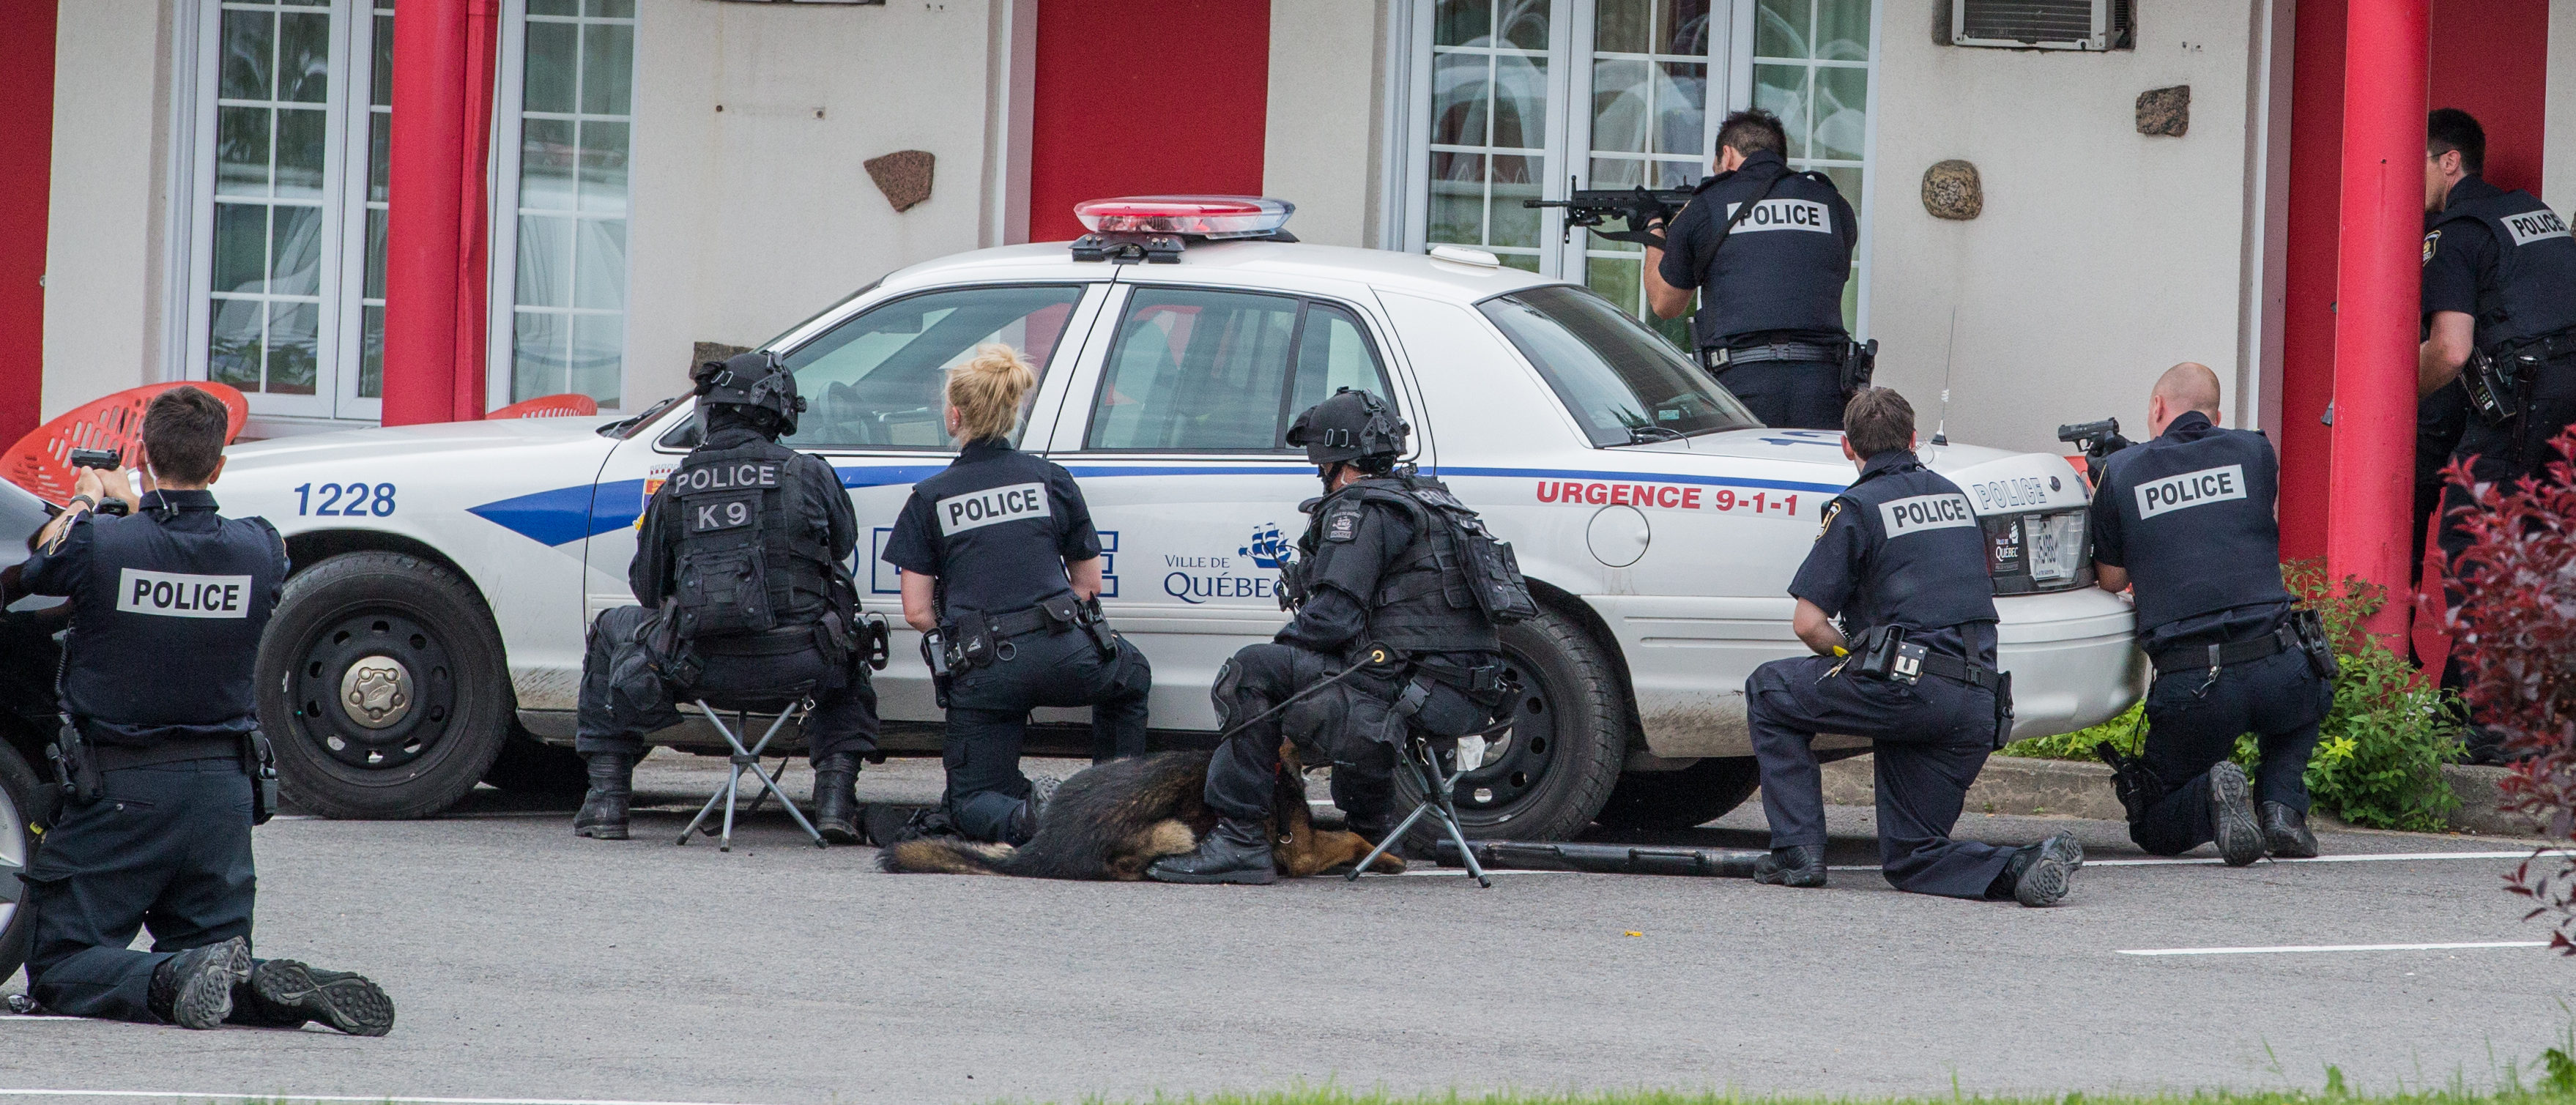 Police take cover behind a car during a hostage situation (Shutterstock/Steve Jolicoeur)